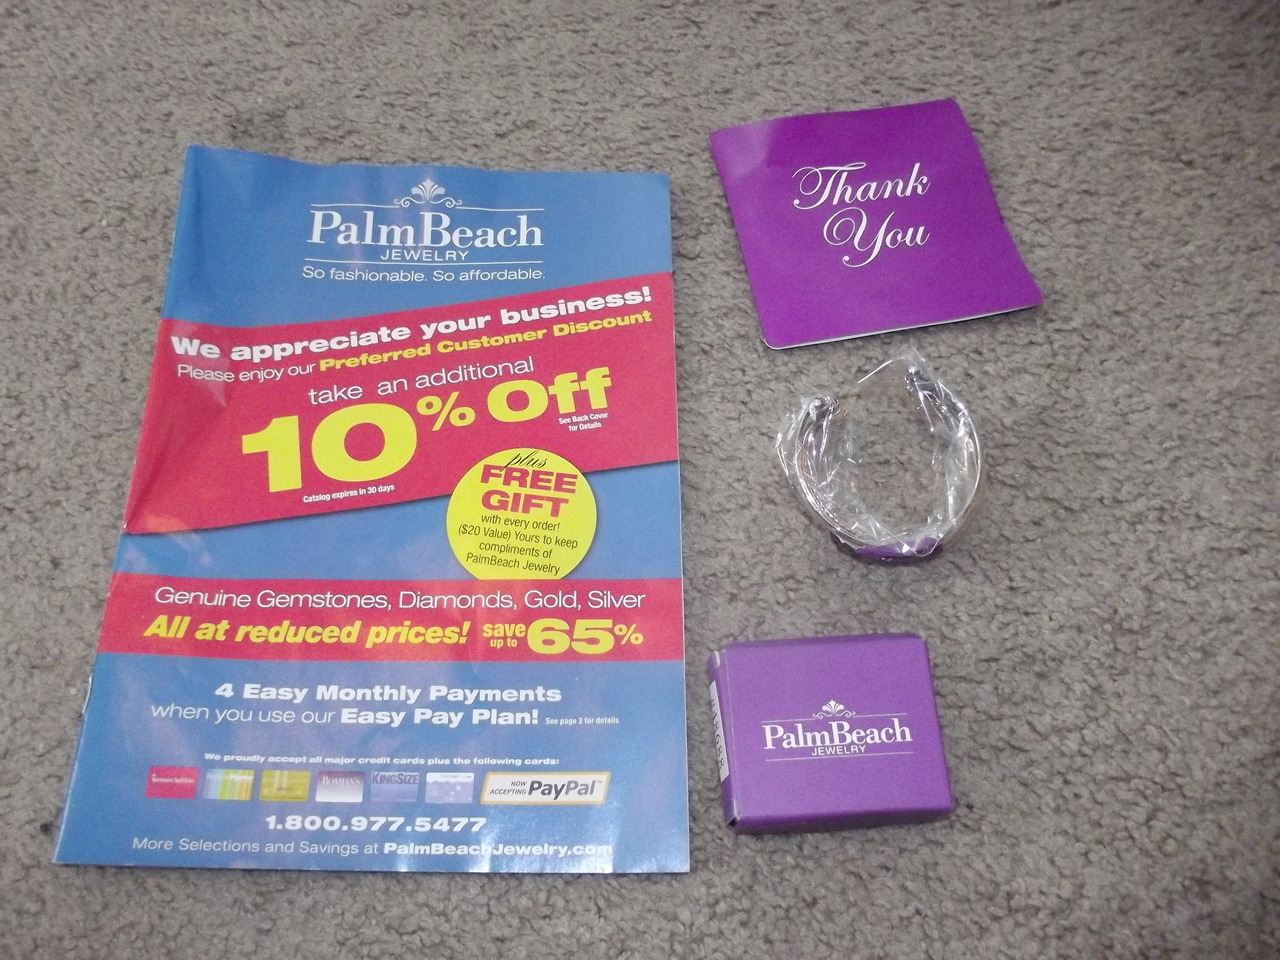 Palm beach jewelry haul here on my blog. Plus a free gift card!